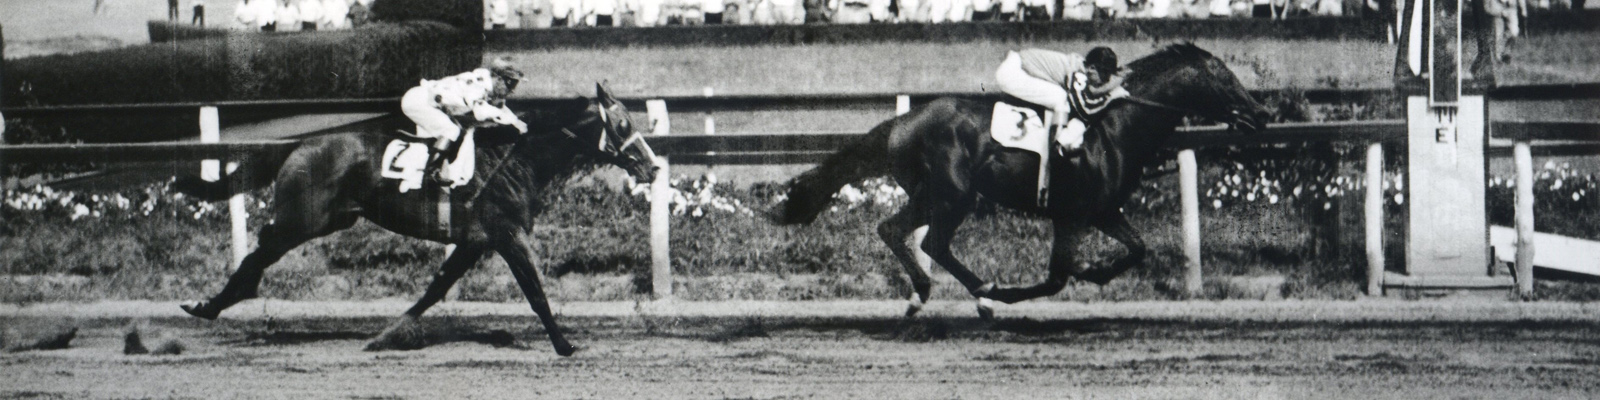 Tom Fool (Ted Atkinson up) winning the 1953 Brooklyn Handicap at Aqueduct (Keeneland Library Morgan Collection/Museum Collection)